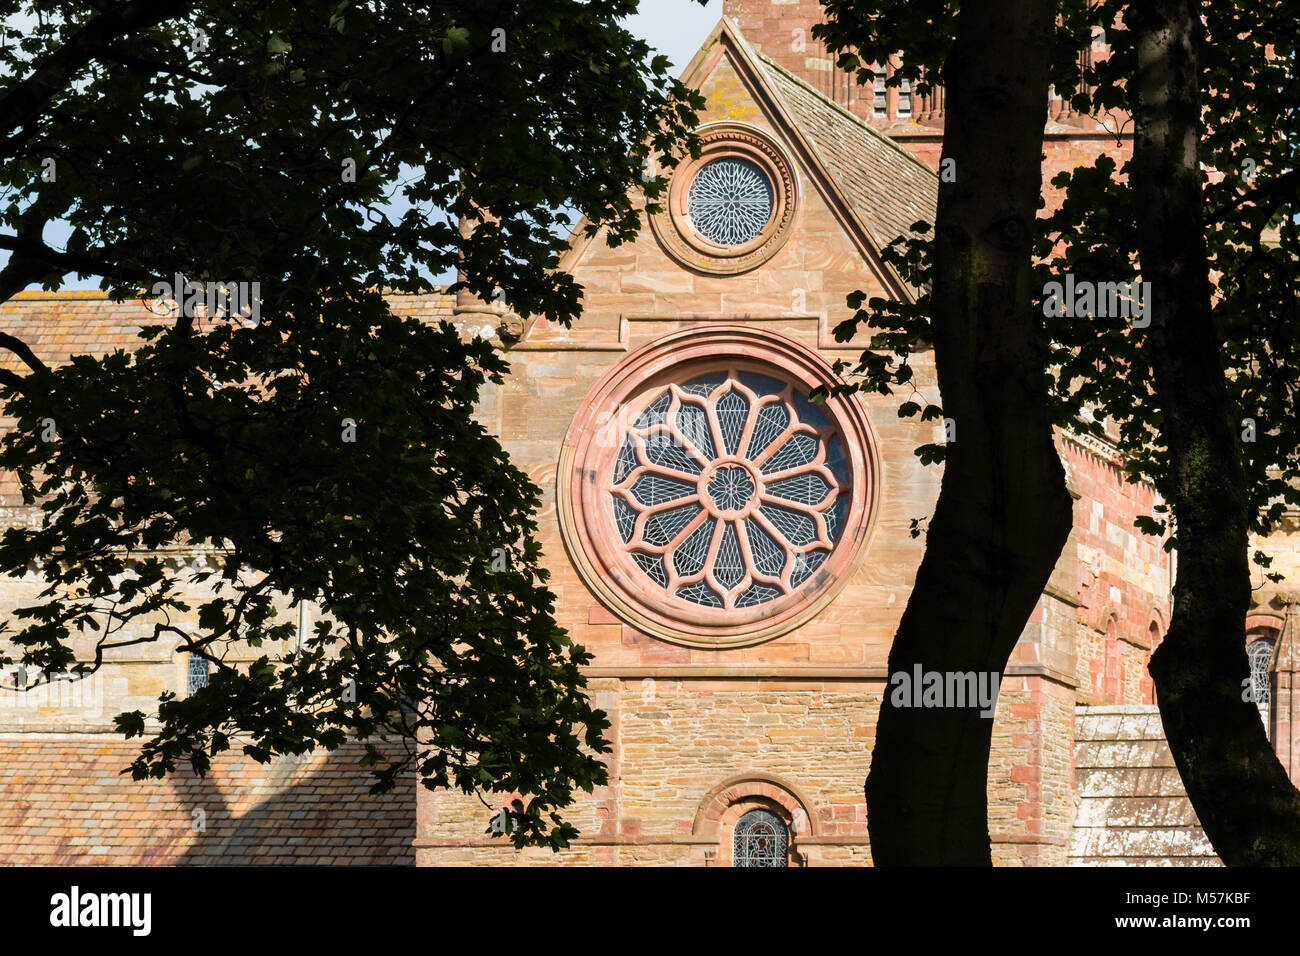 Reconstructed Rose window in the south transept of St Magnus Cathedral, Kirkwall, Orkney, Scotland - Stock Image